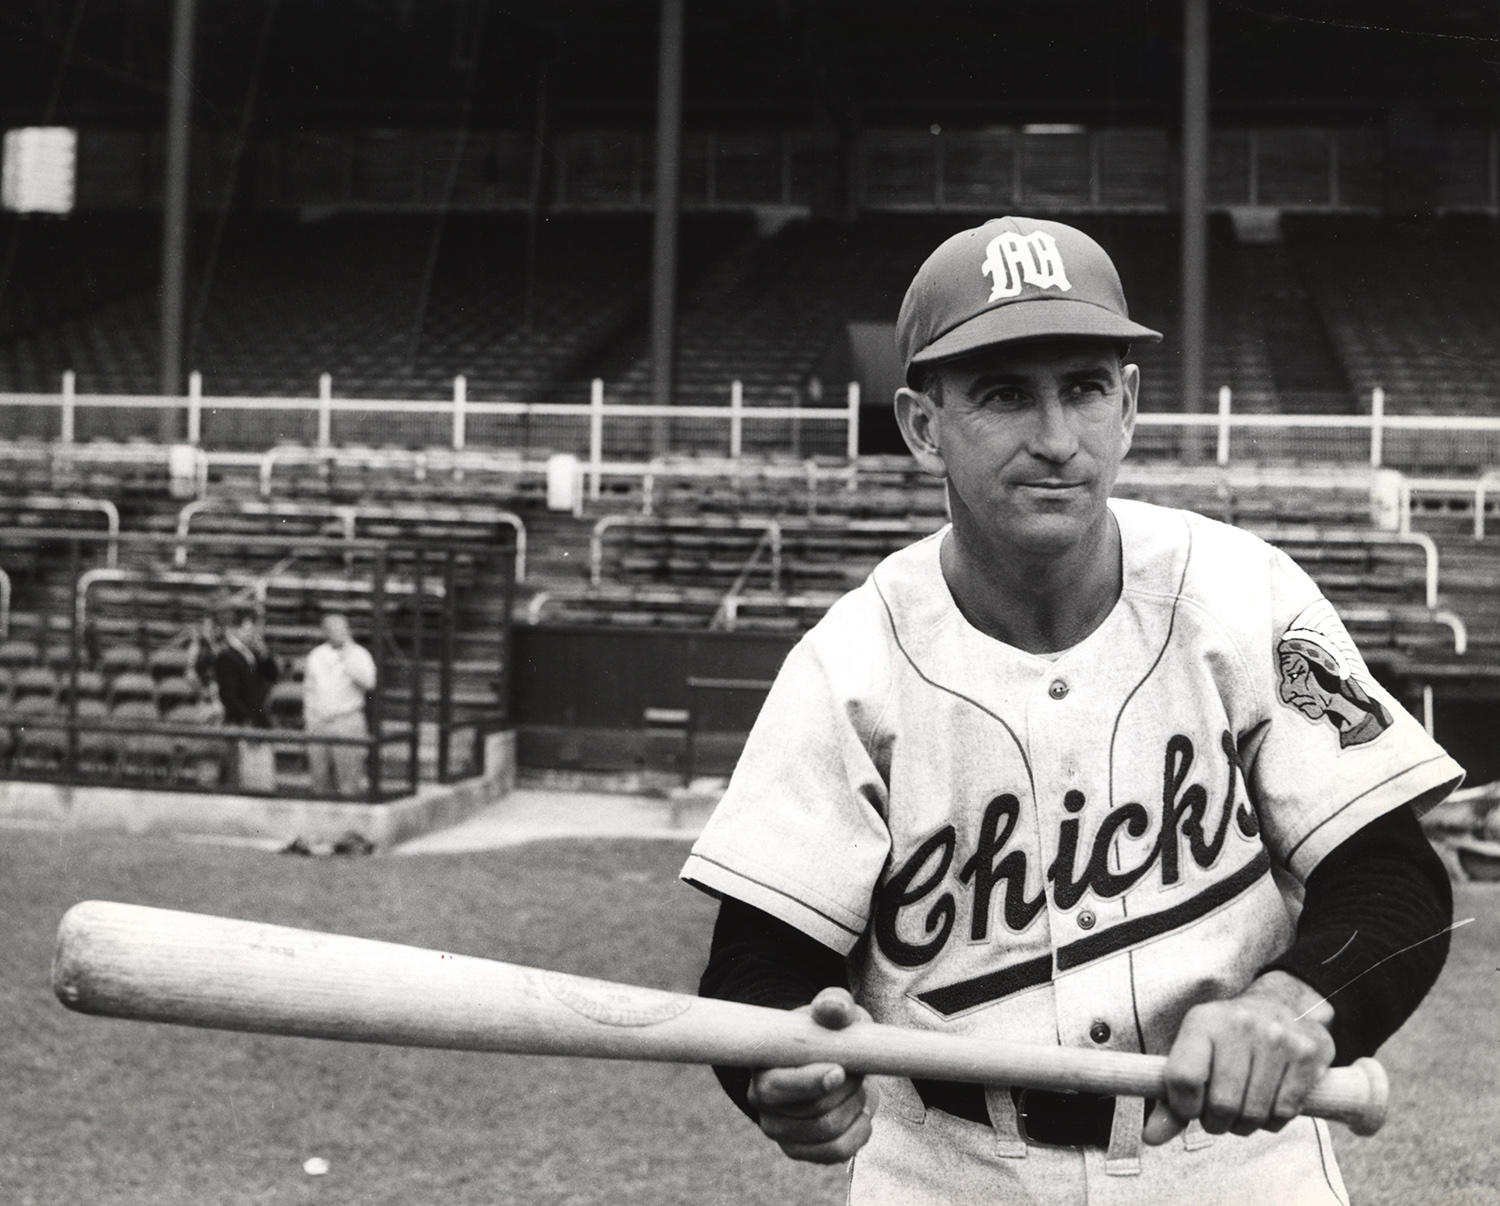 After retiring as a player, Luke Appling continued to work in both the minor and major leagues, both as a coach and as a manager. In 1951, he took the helm of the Memphis Chicks and was named the Southern Association's Manager of the Year in 1952. (National Baseball Hall of Fame and Museum)